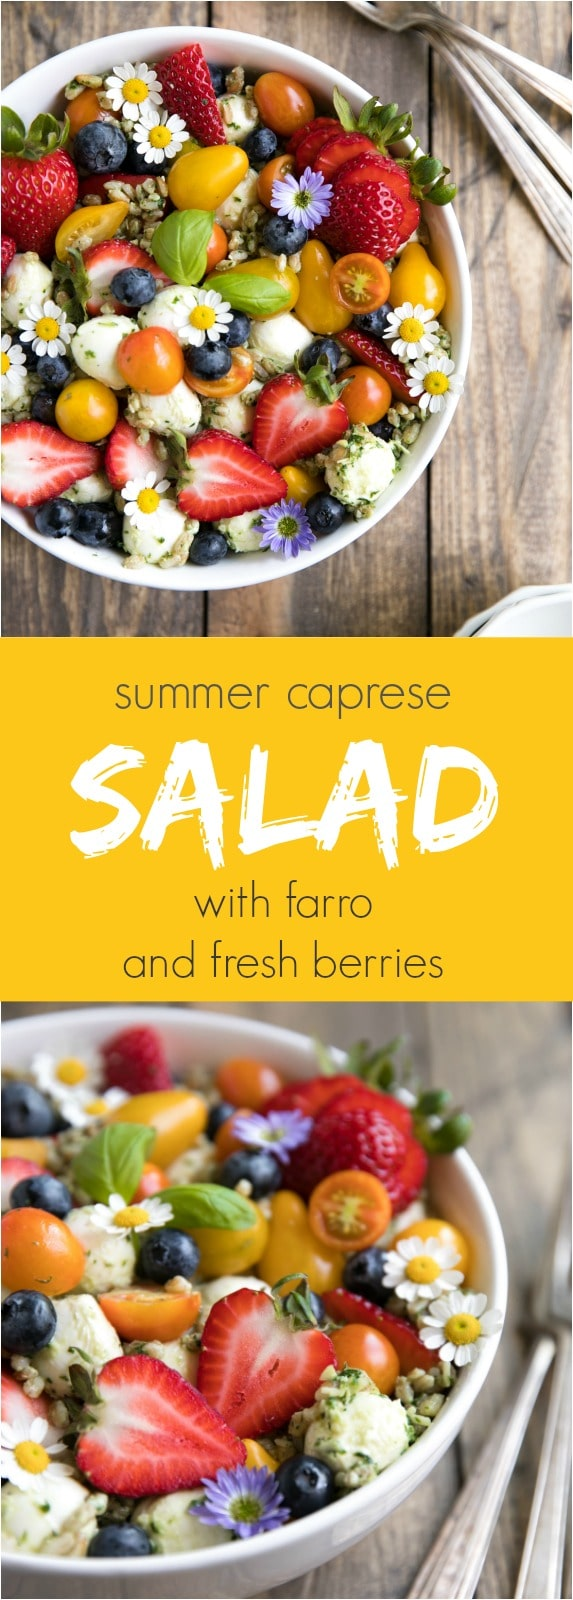 Strawberry and Blueberry Caprese Farro Salad #summerrecipes #salad #healthyrecipes #fruit #berries